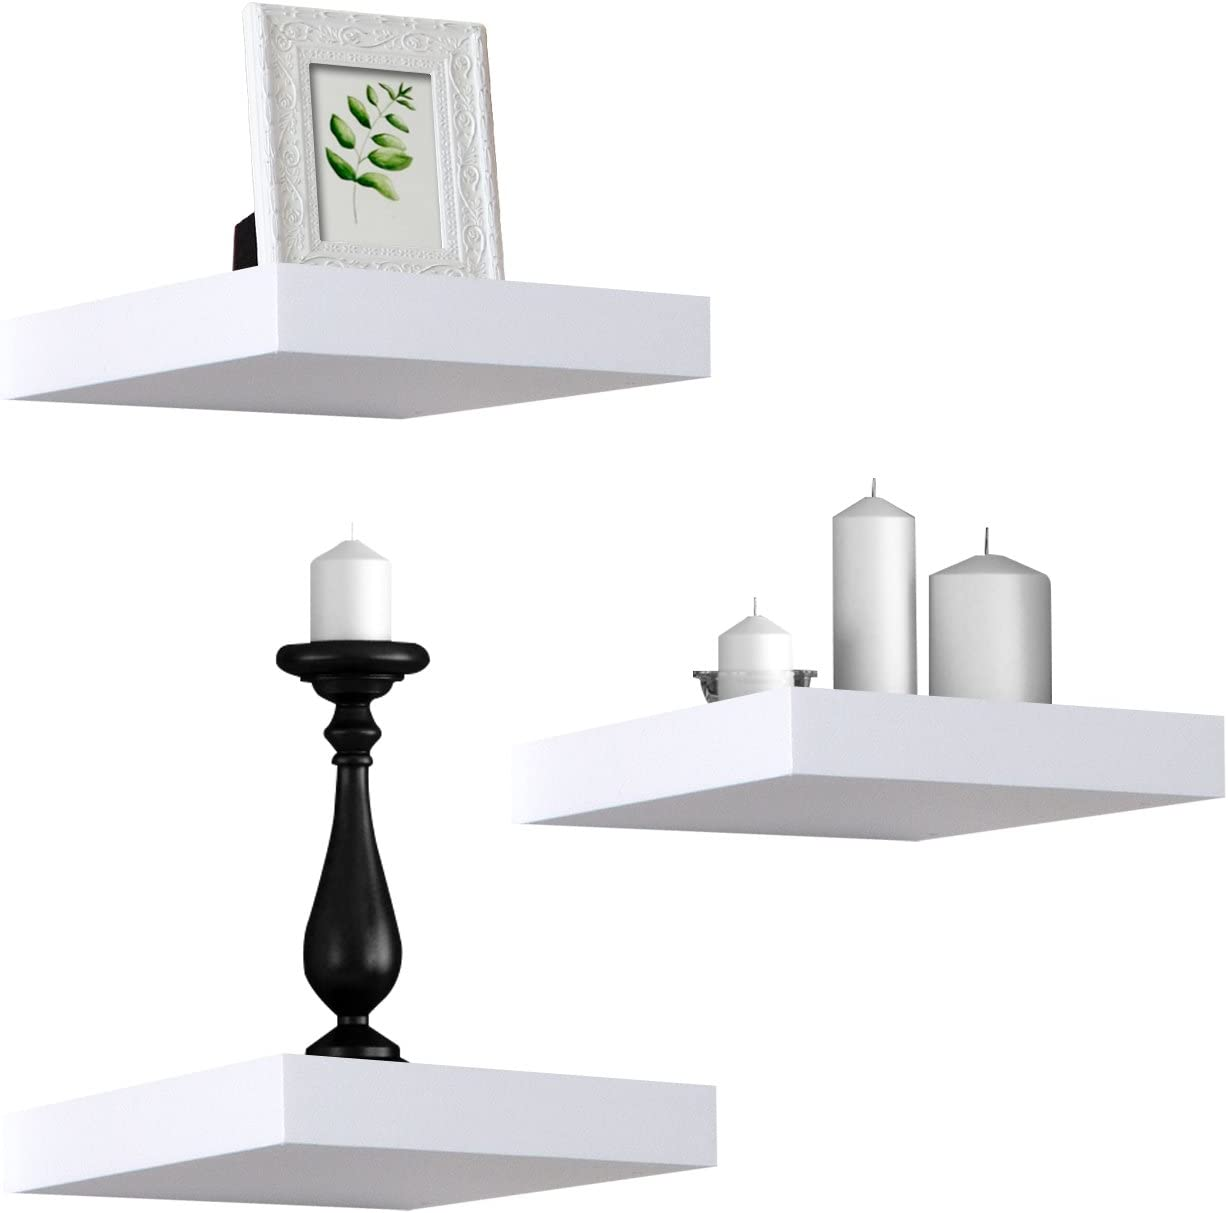 Sorbus Floating Shelves Hanging Wall Shelves Decoration Perfect Trophy Display, Photo Frames White